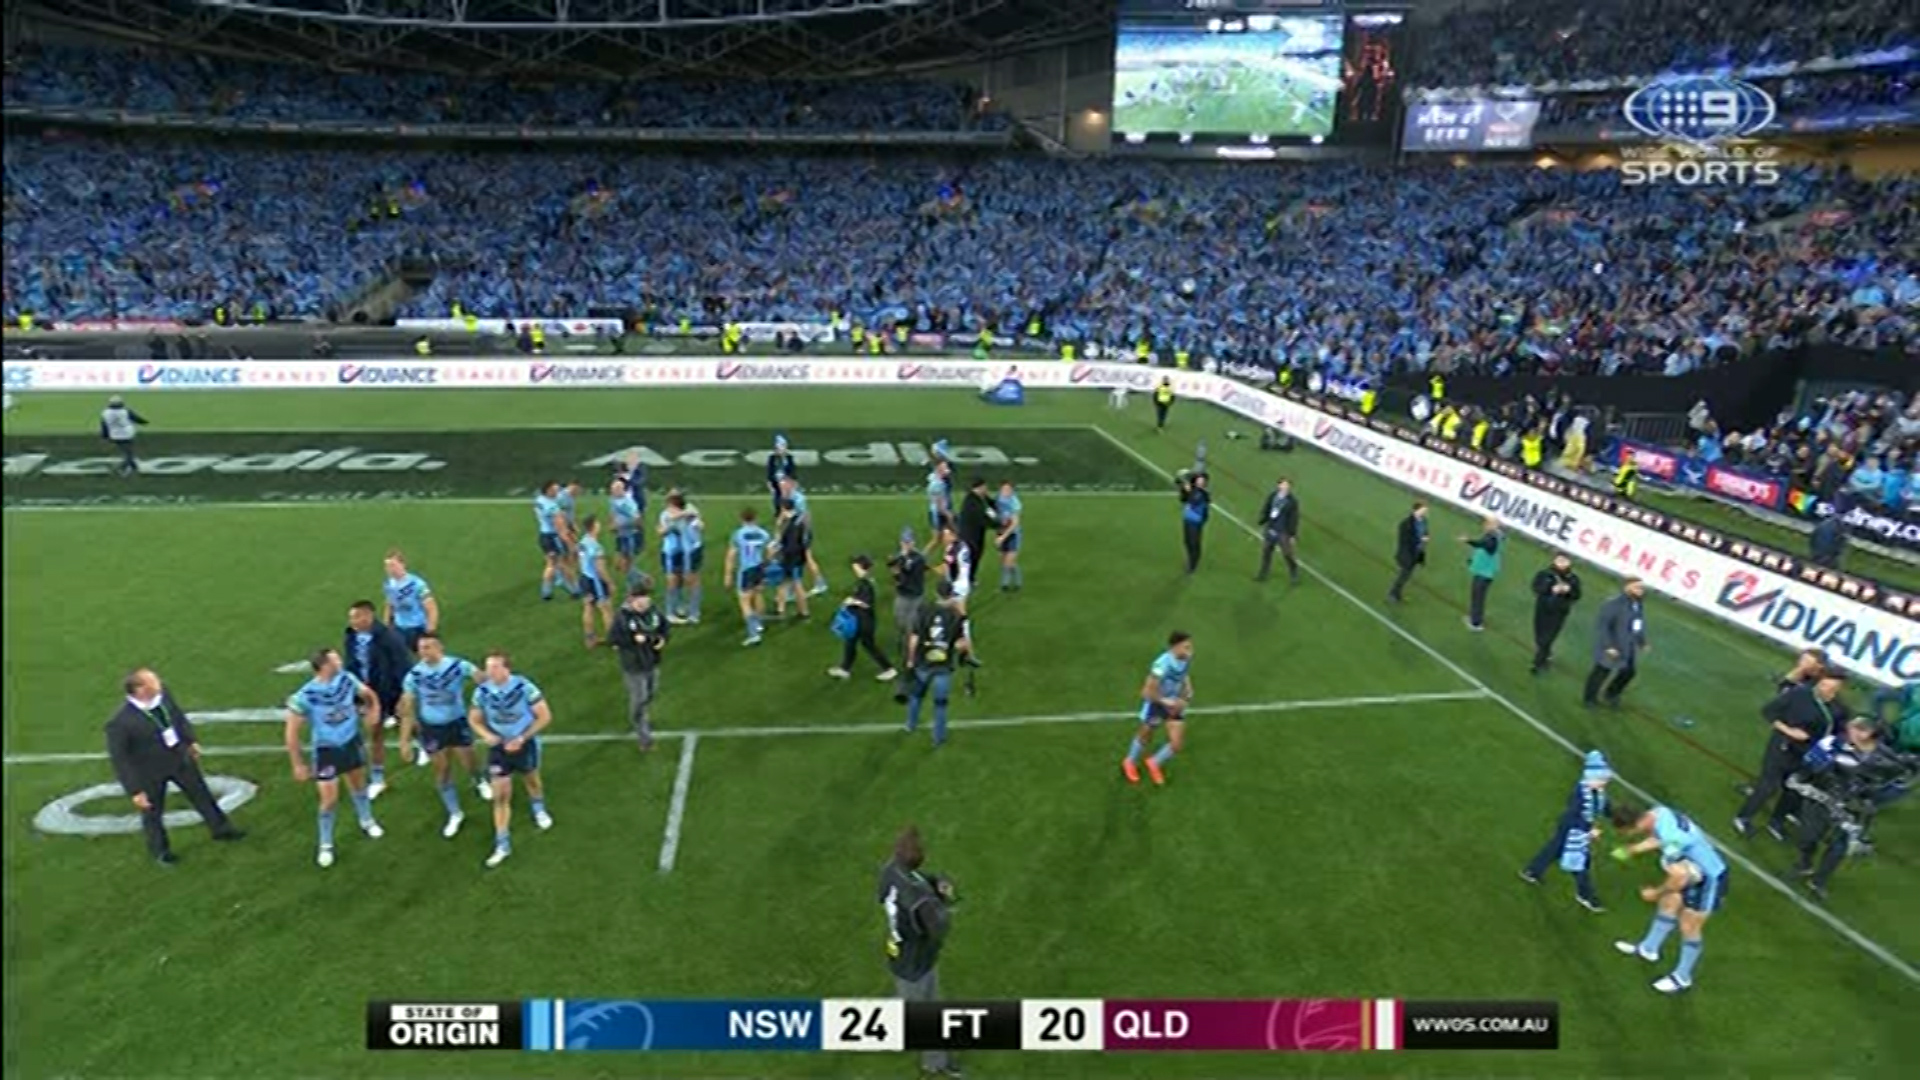 State of Origin: Brad Fittler feared James Tedesco try would be chalked off